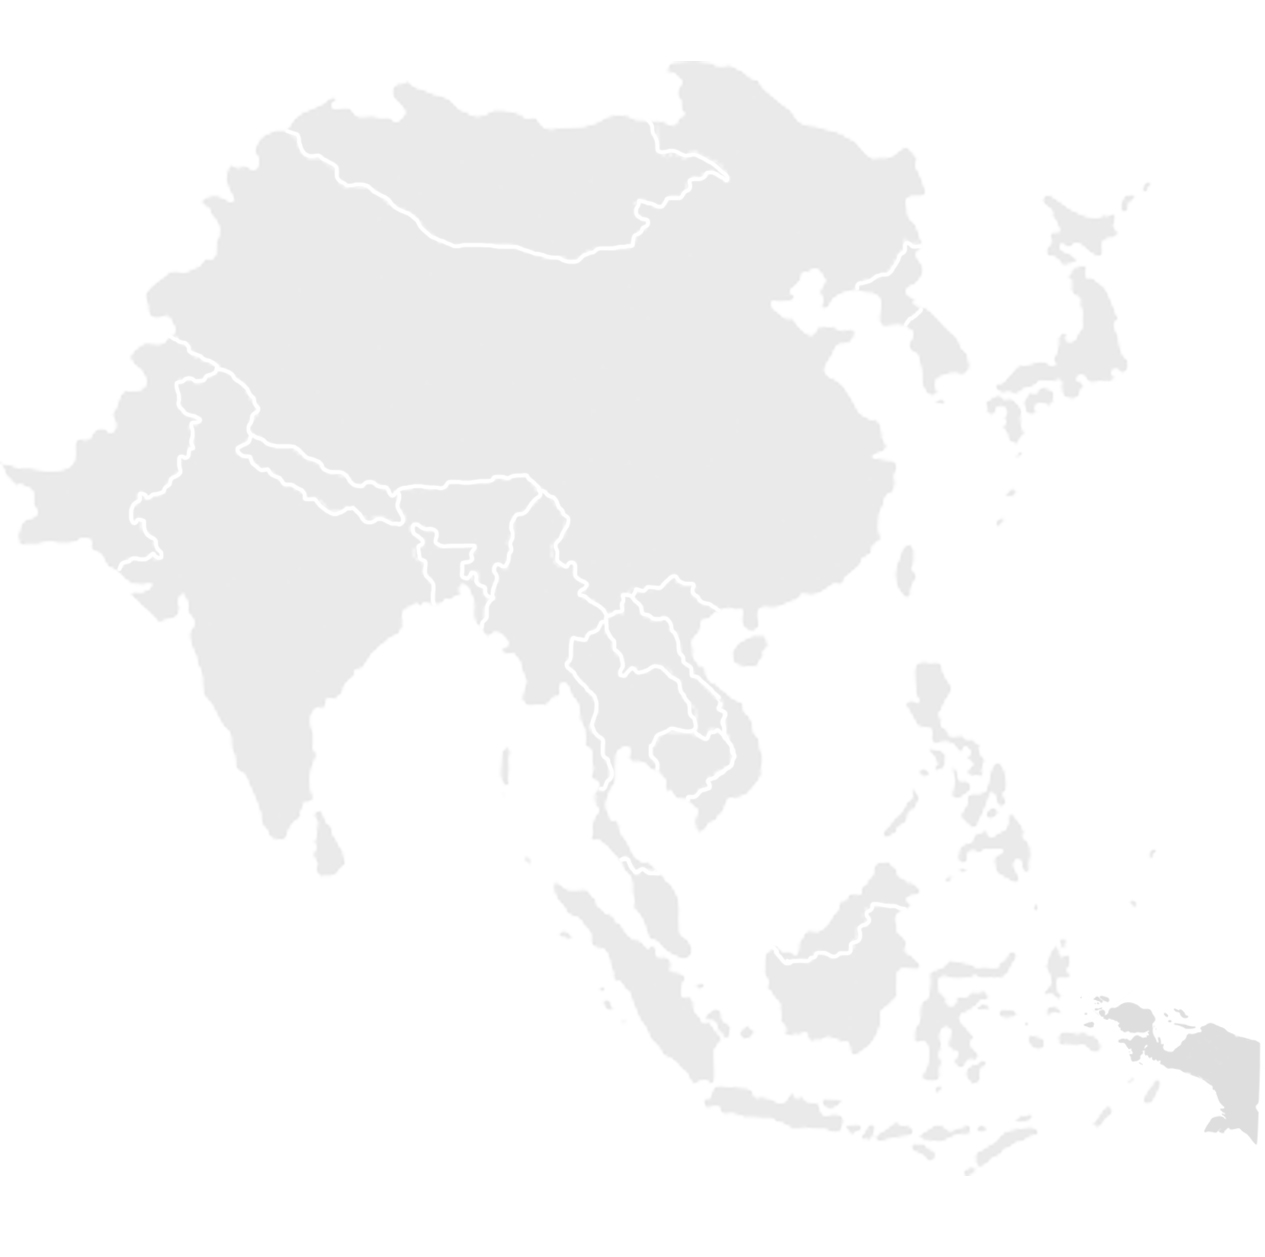 Gray map of Asia